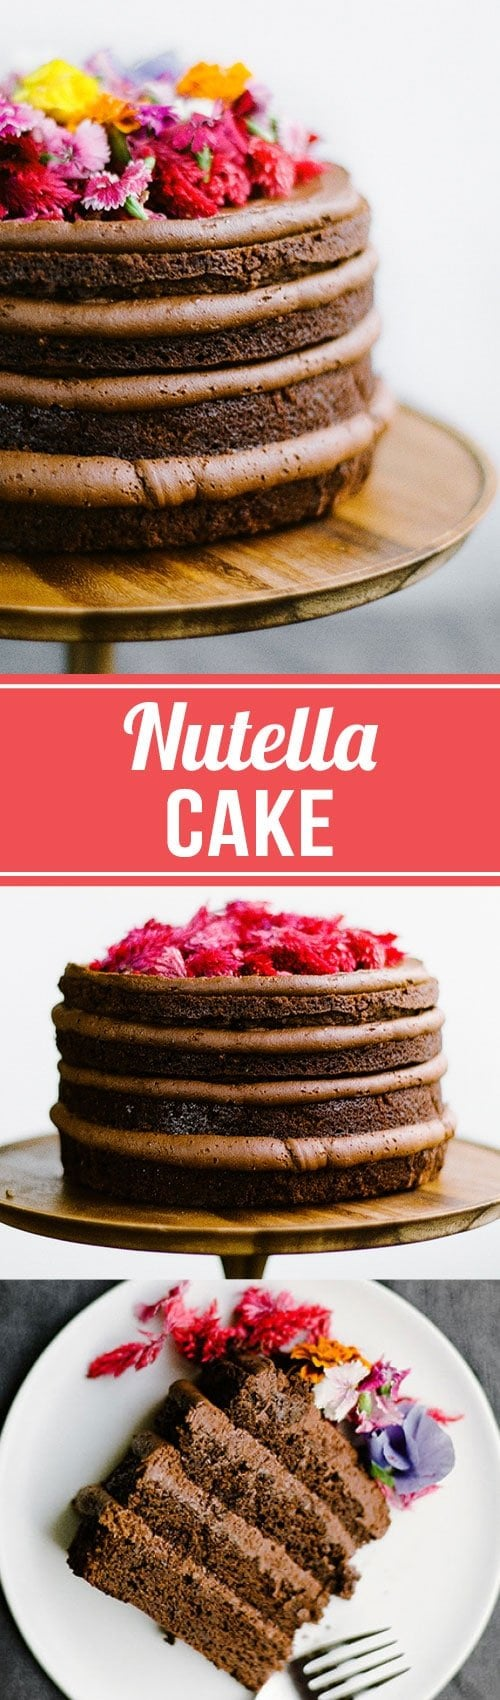 This decadent Nutella Cake features four layers of moist and tender Nutella chocolate cake with a generous helping of luscious Nutella buttercream. Decorated with edible flowers, this cake is perfect for Valentine's Day, Easter, birthdays, or any other special occasion!